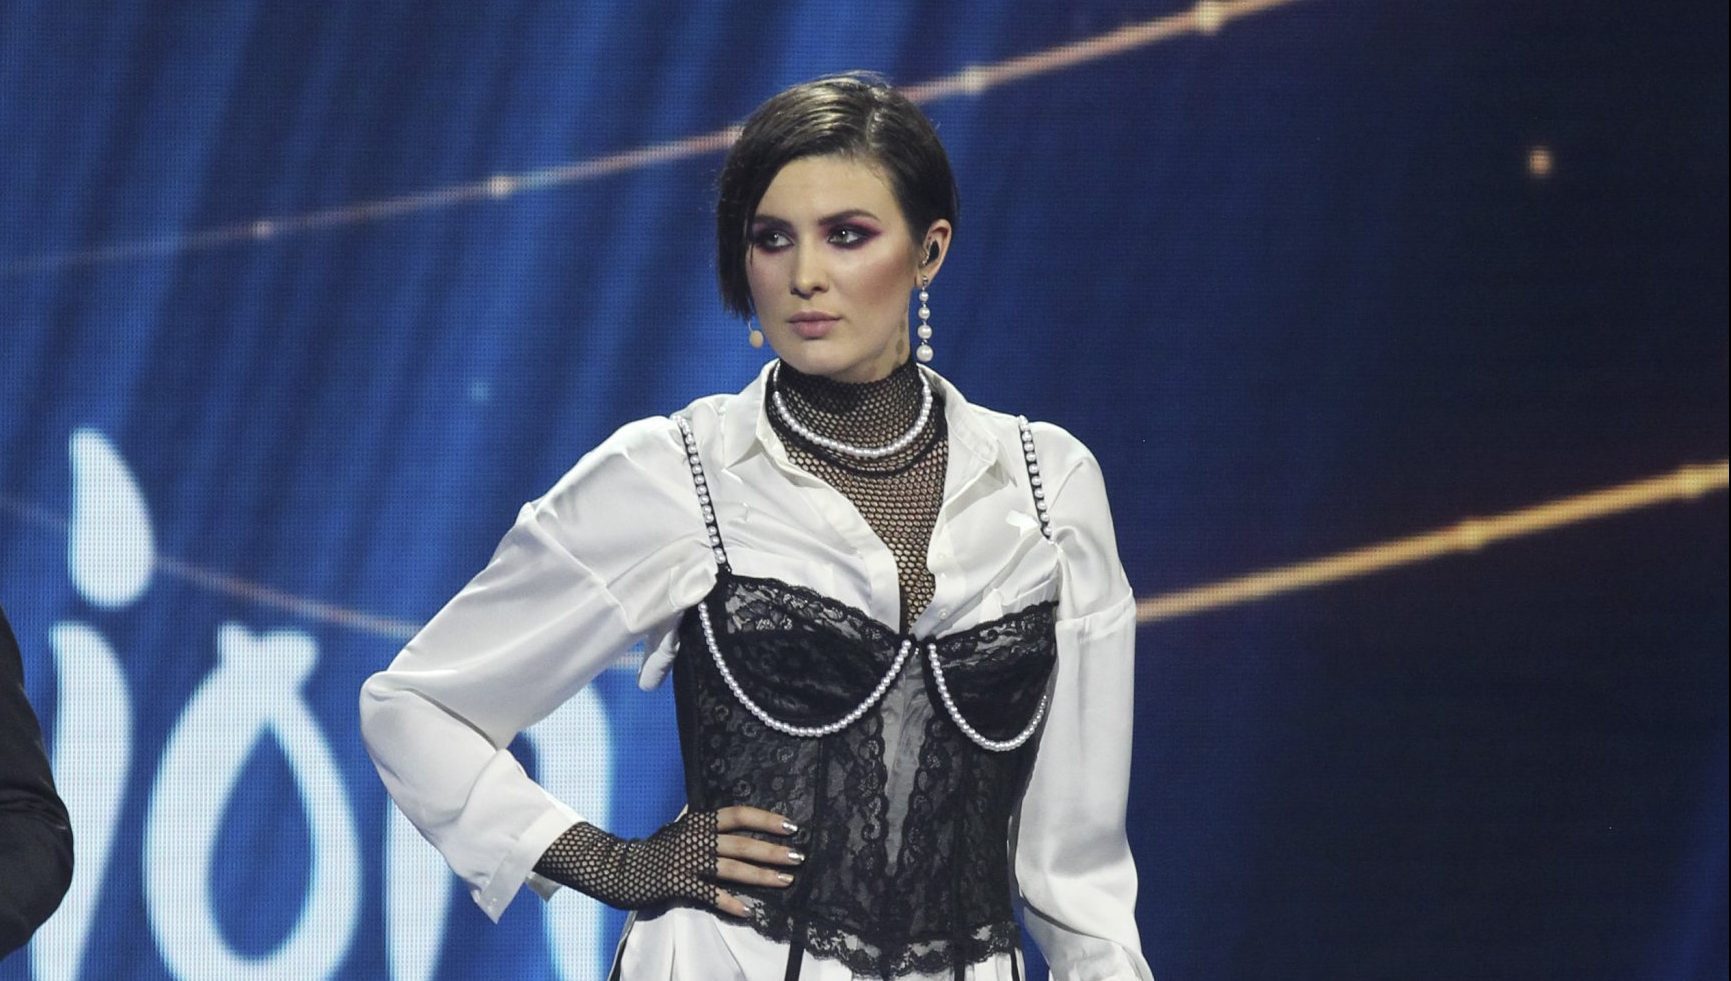 Ukraine drops their Eurovision entry as they accuse Maruv of 'politicising' song contest